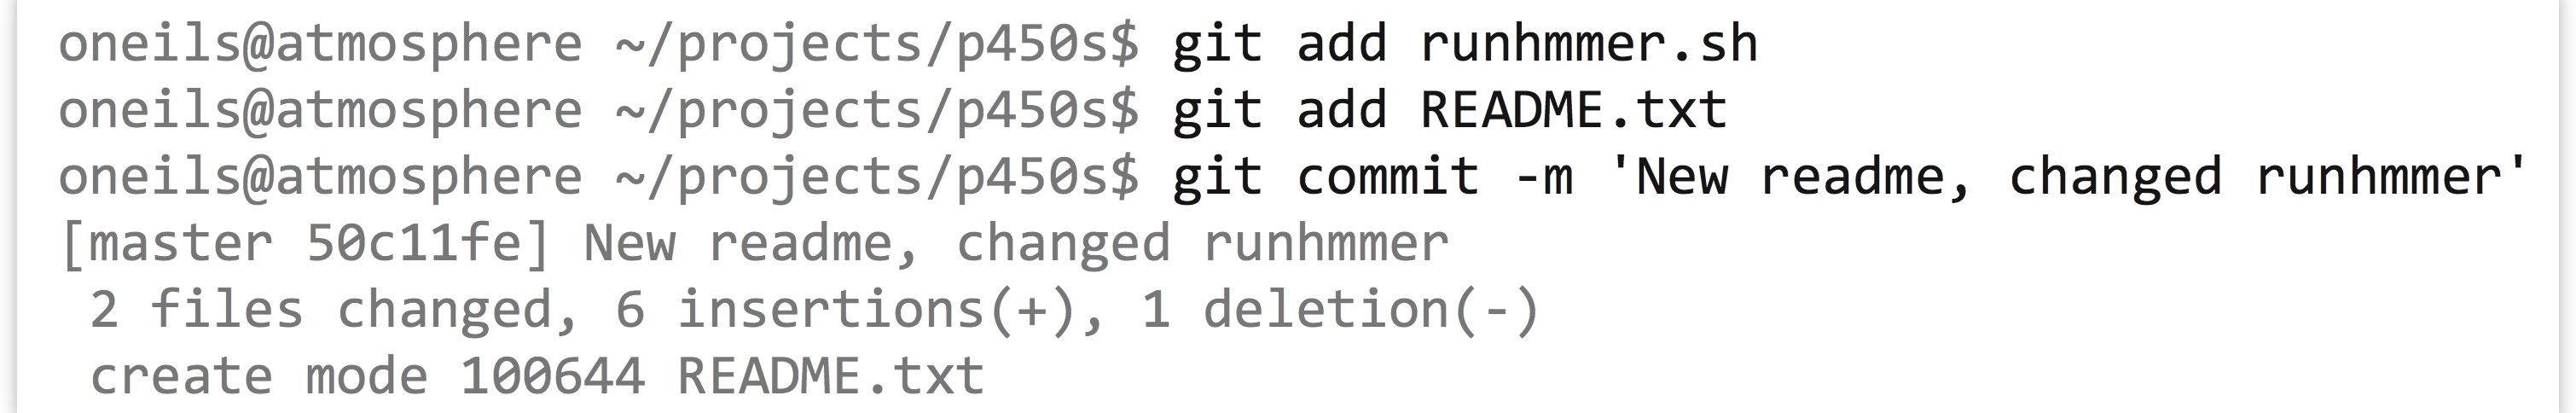 I.12_31_unix_159_9_git_edit_stage_commit